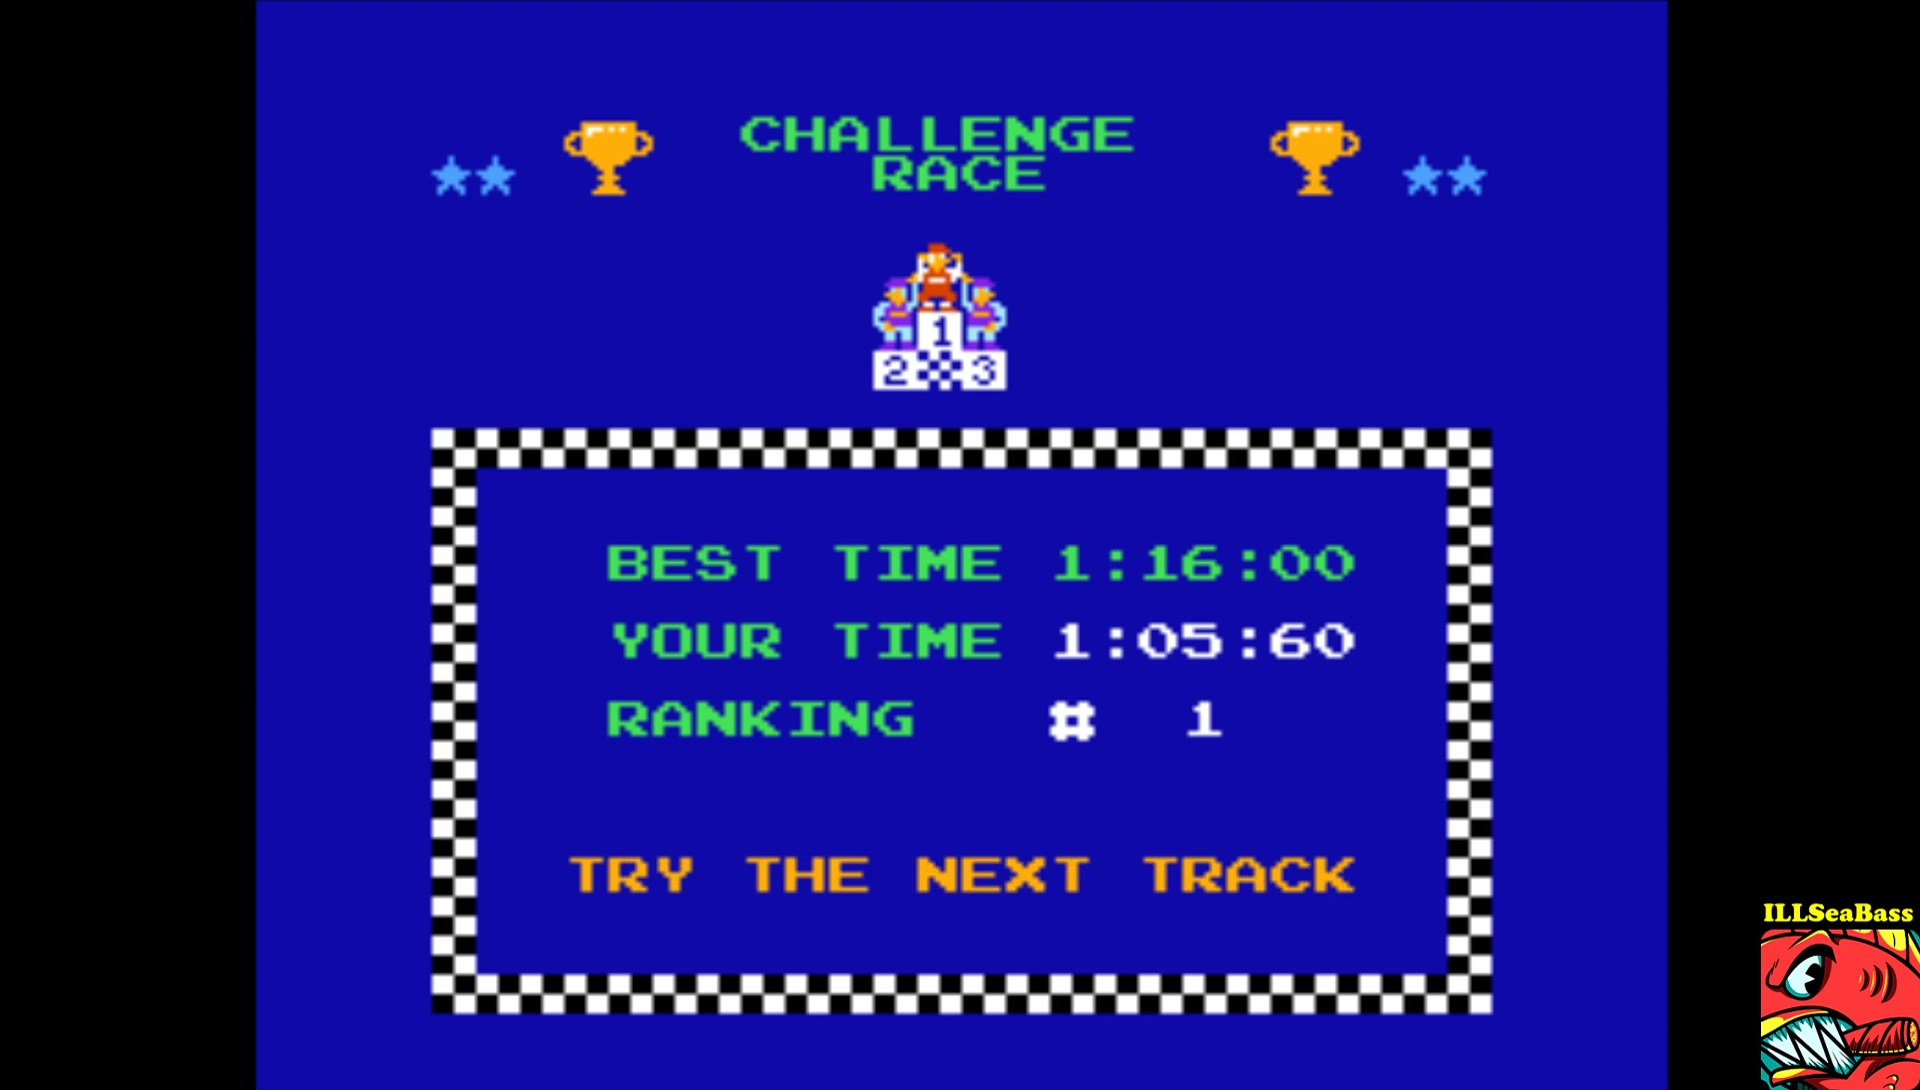 Excitebike: Track 3 time of 0:01:05.6